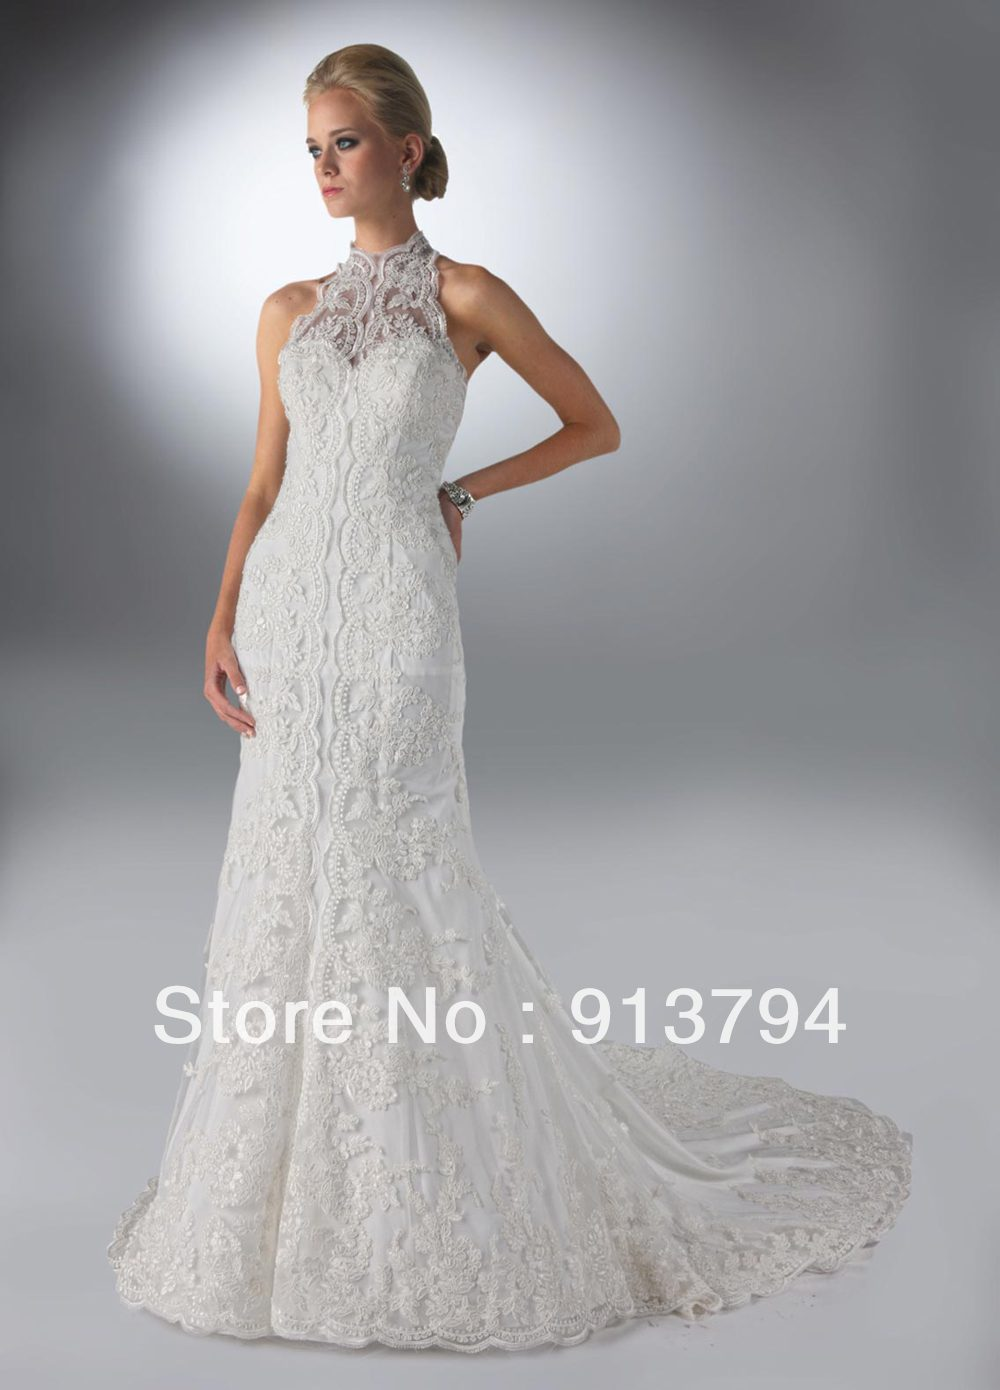 Halter Lace Elegant Mermaid Wedding Dress Db50085 White Bridal Dressin Dresses From Weddings Events On Aliexpress Alibaba Group: White Elegant Mermaid Wedding Dresses At Websimilar.org